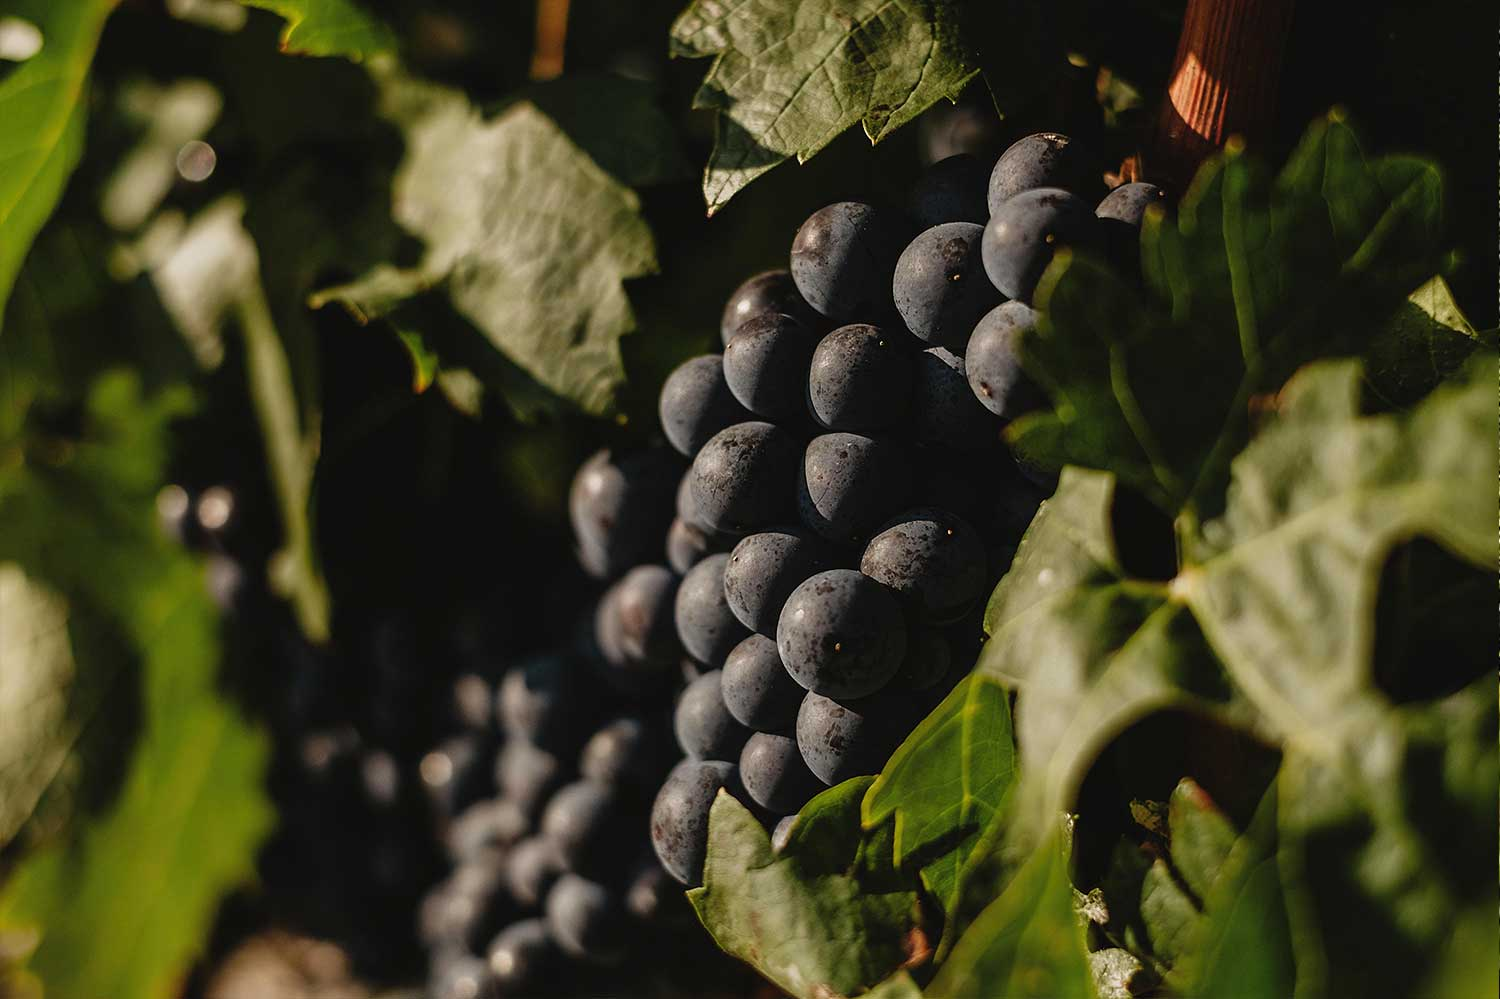 Rioja vines are our treasure - 7 different virieties of grapes